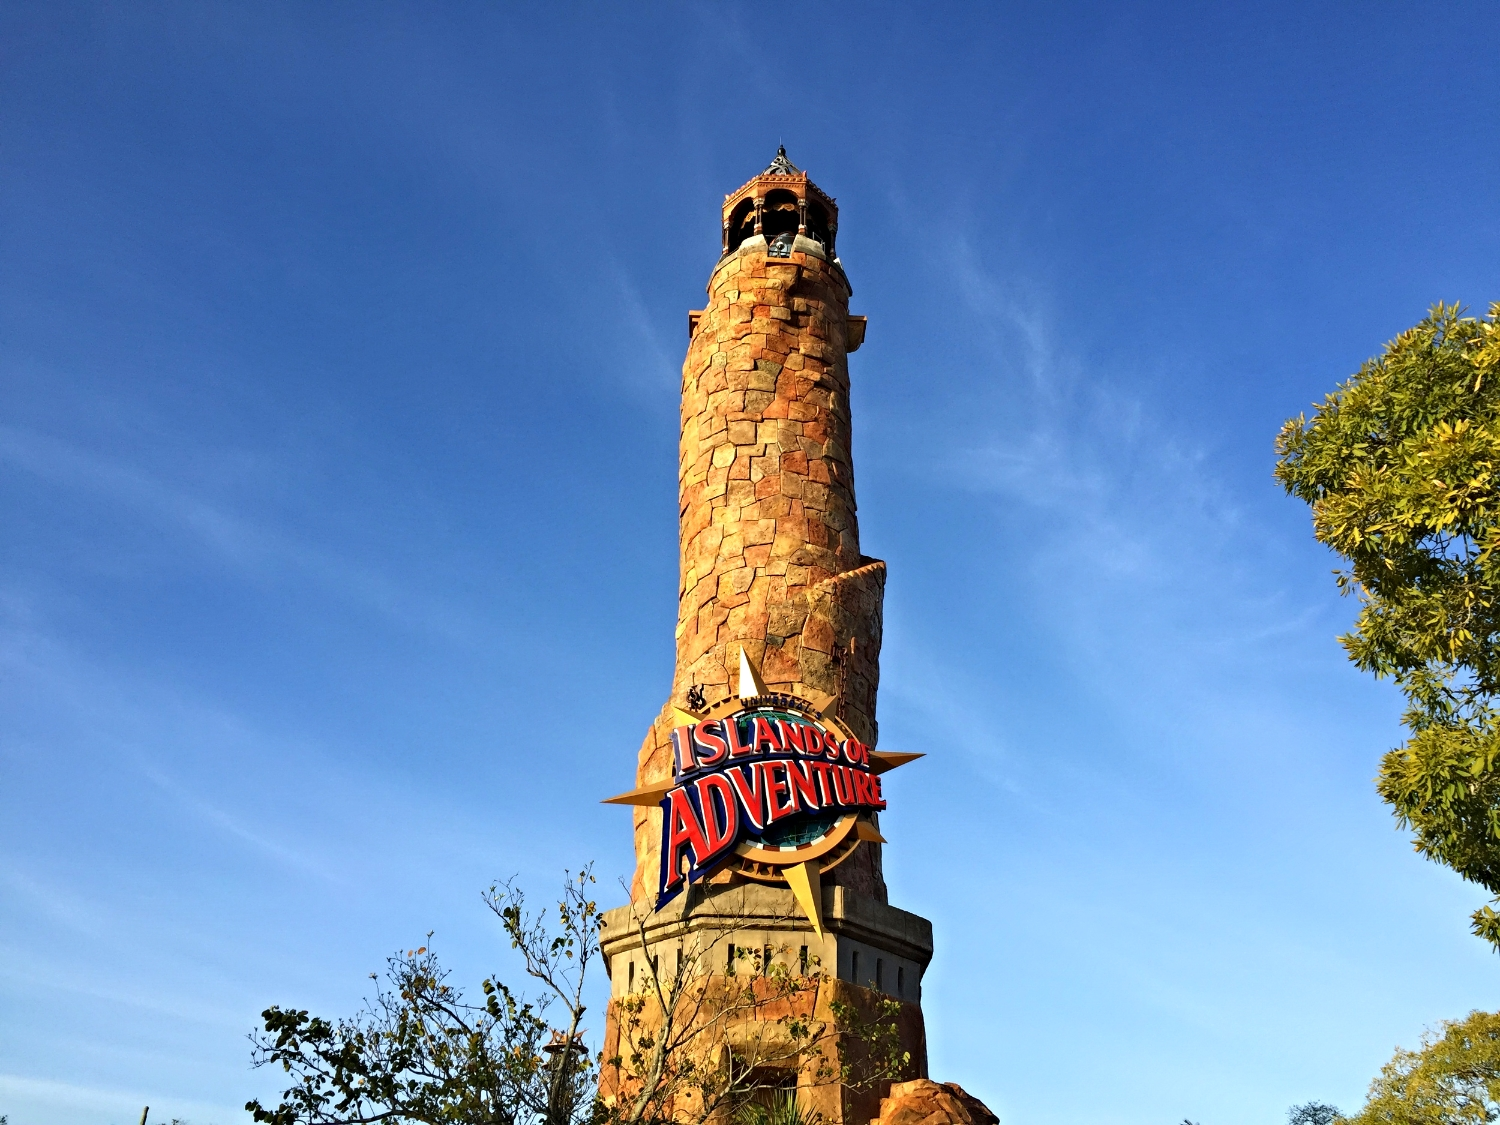 The Pharos Lighthouse in Islands of Adventure.